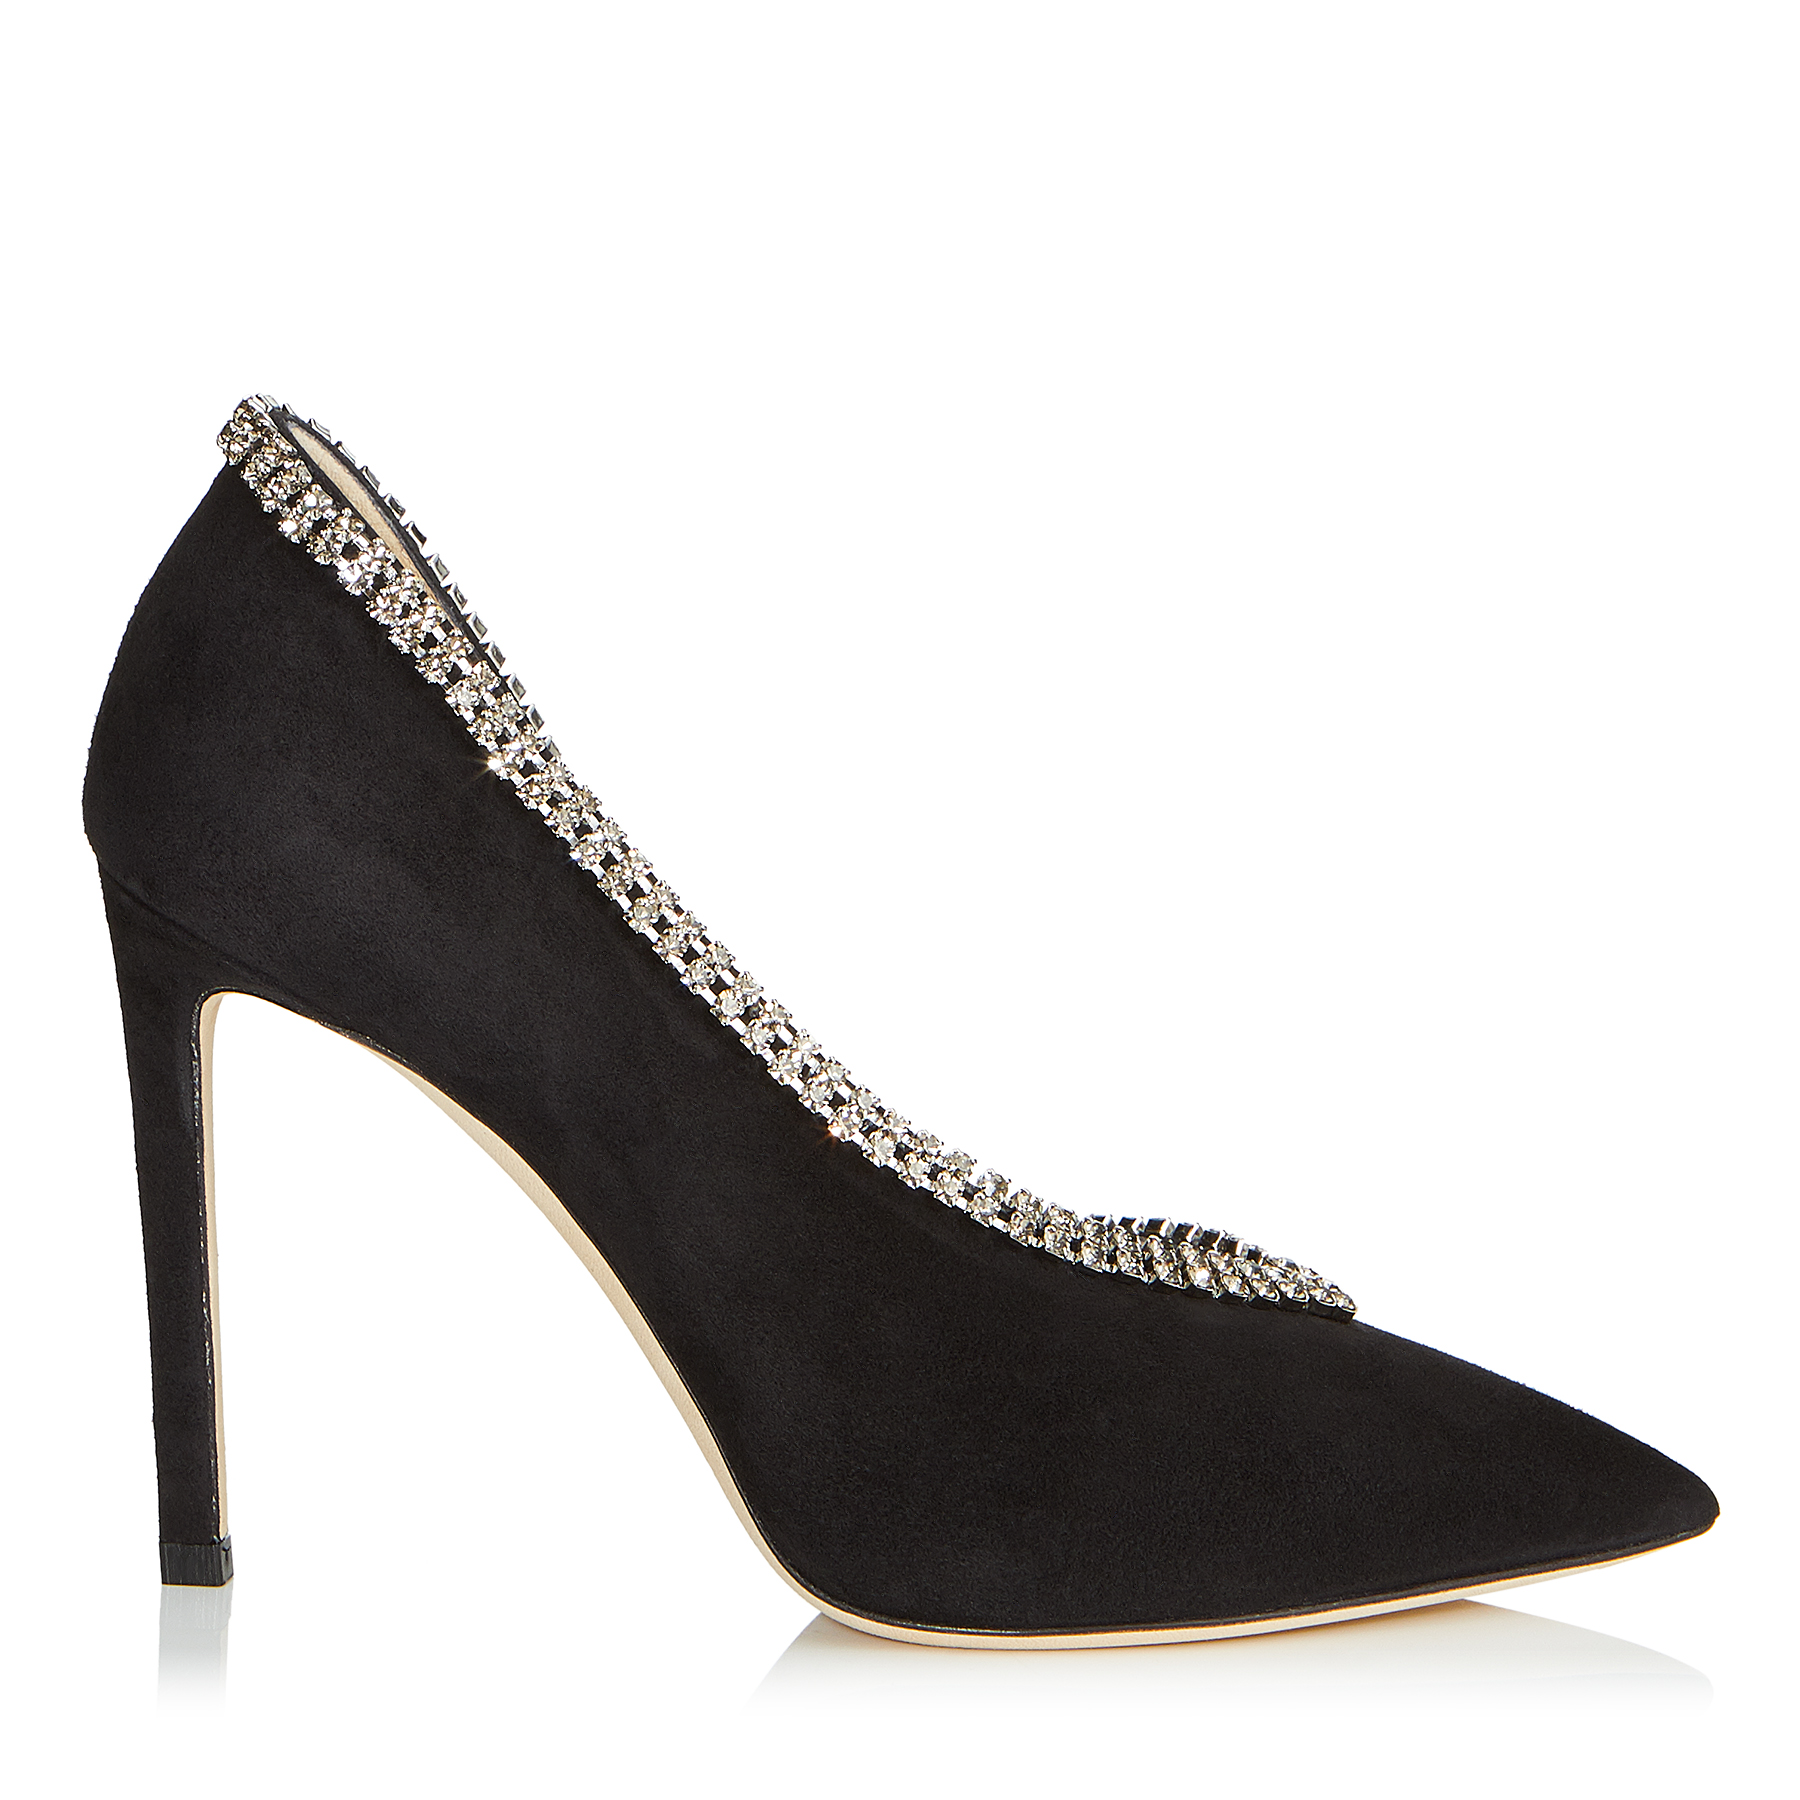 LILIAN 100 Black Suede Pointy Toe Pumps with Crystal Trim by Jimmy Choo